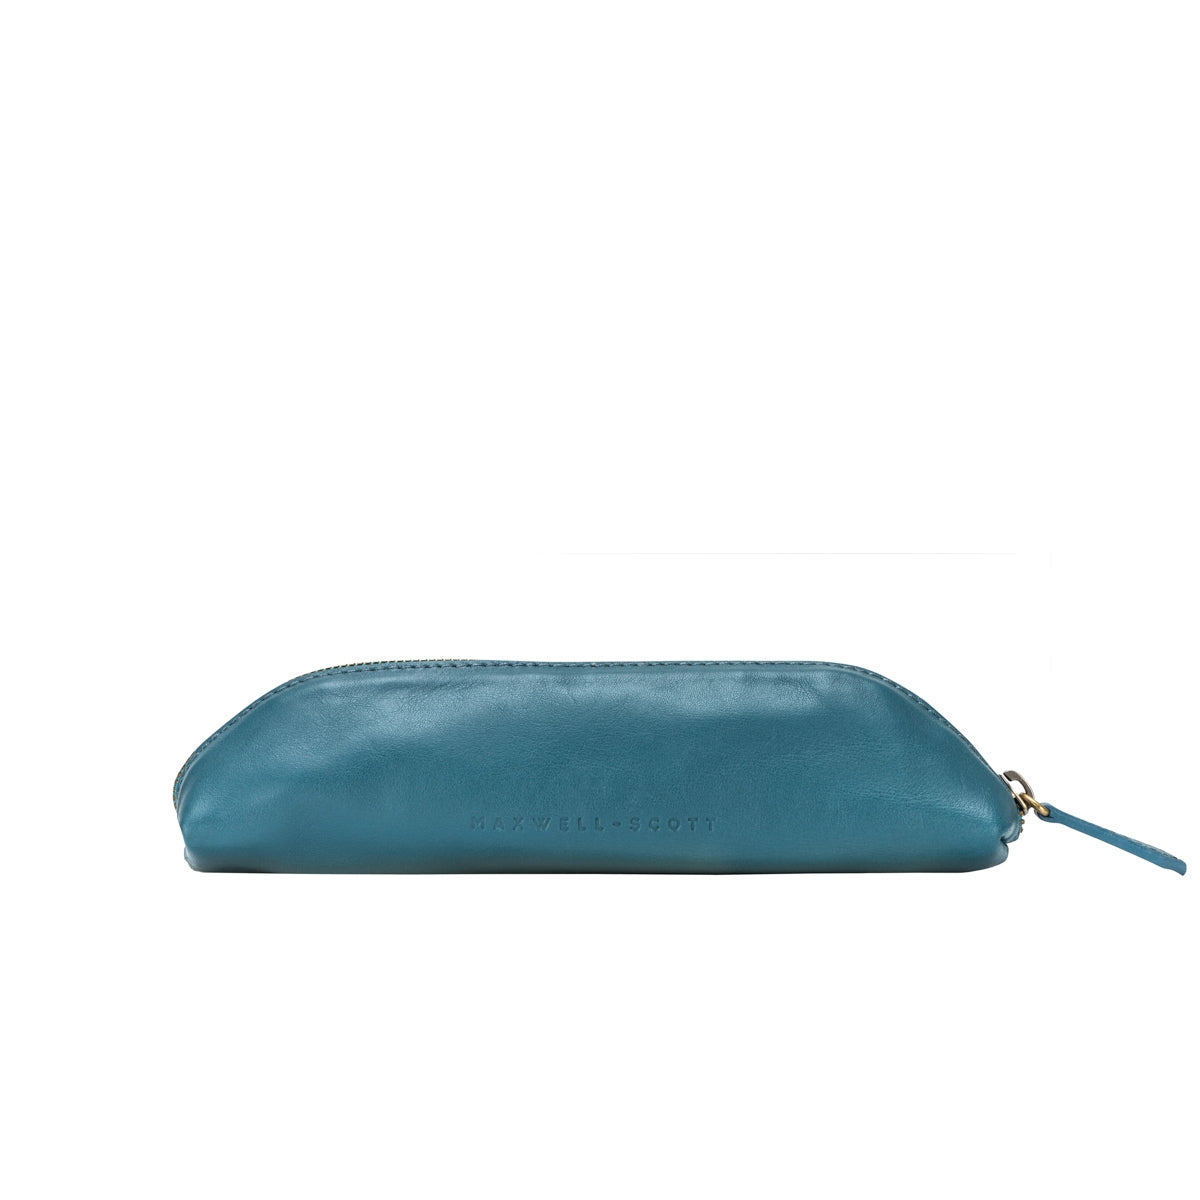 Image 3 of the 'Felice' Leather Pencil Case